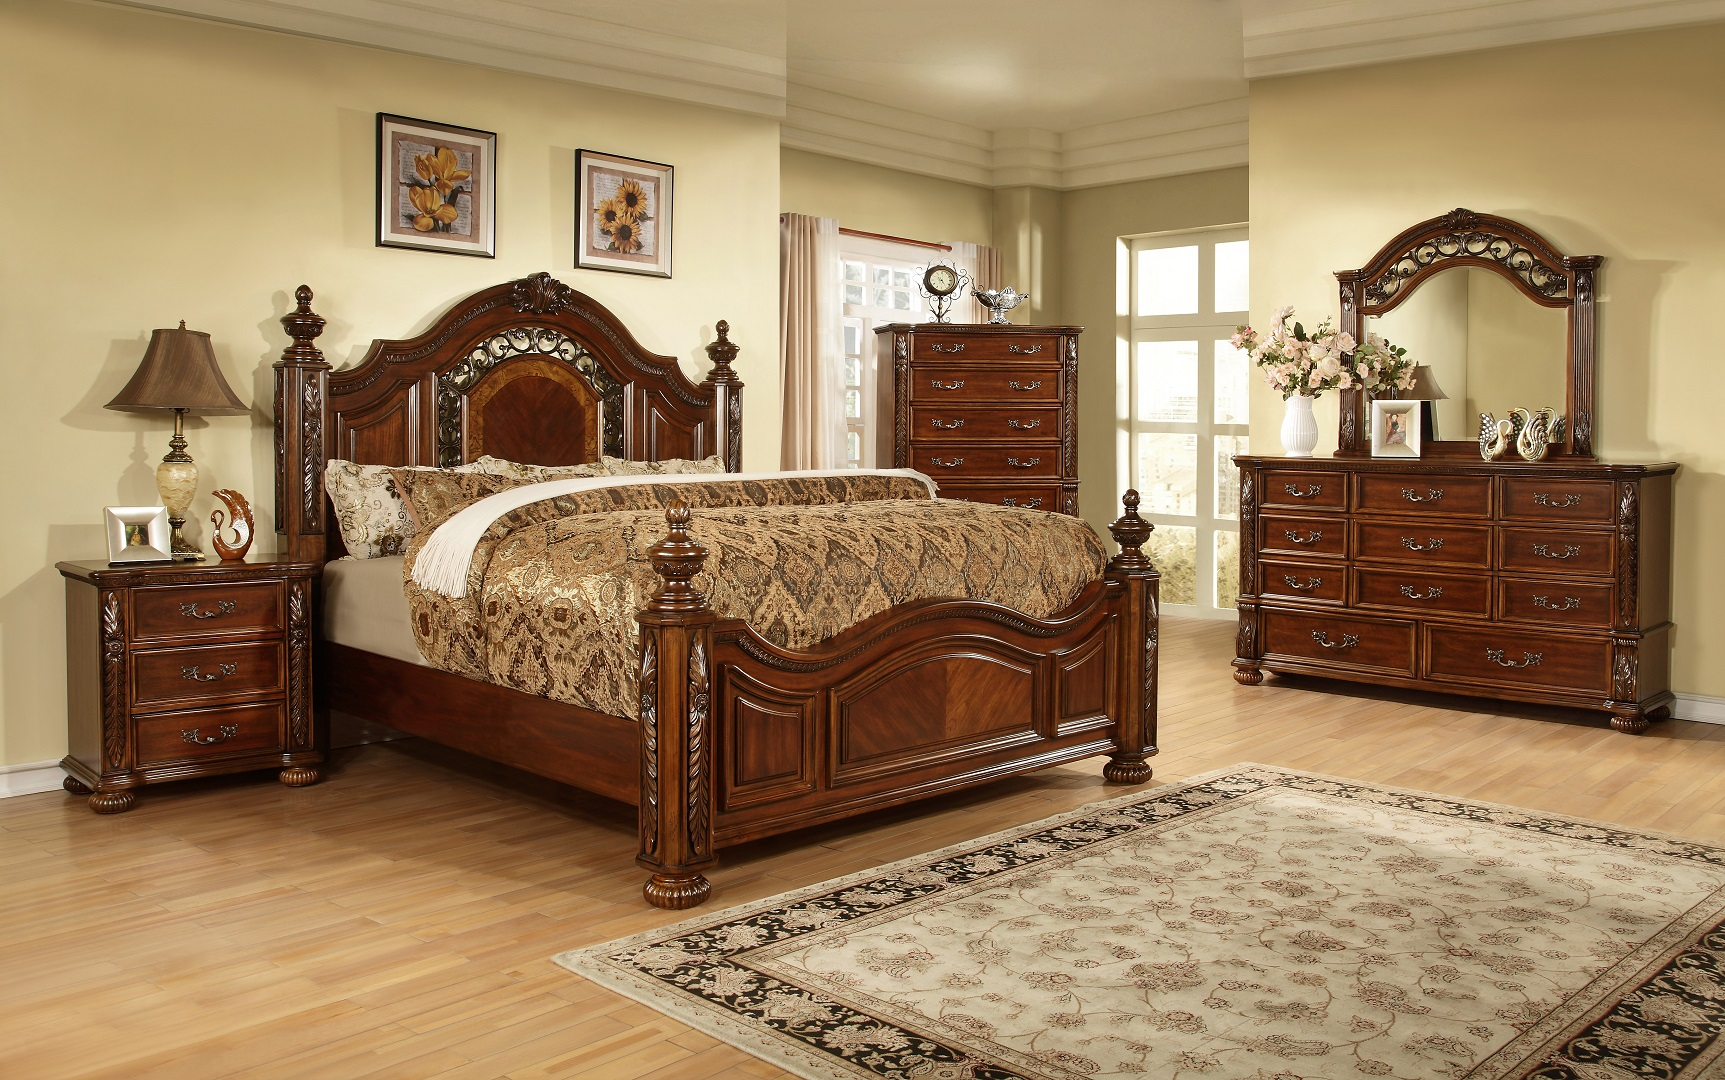 Almalfi Bedroom Set